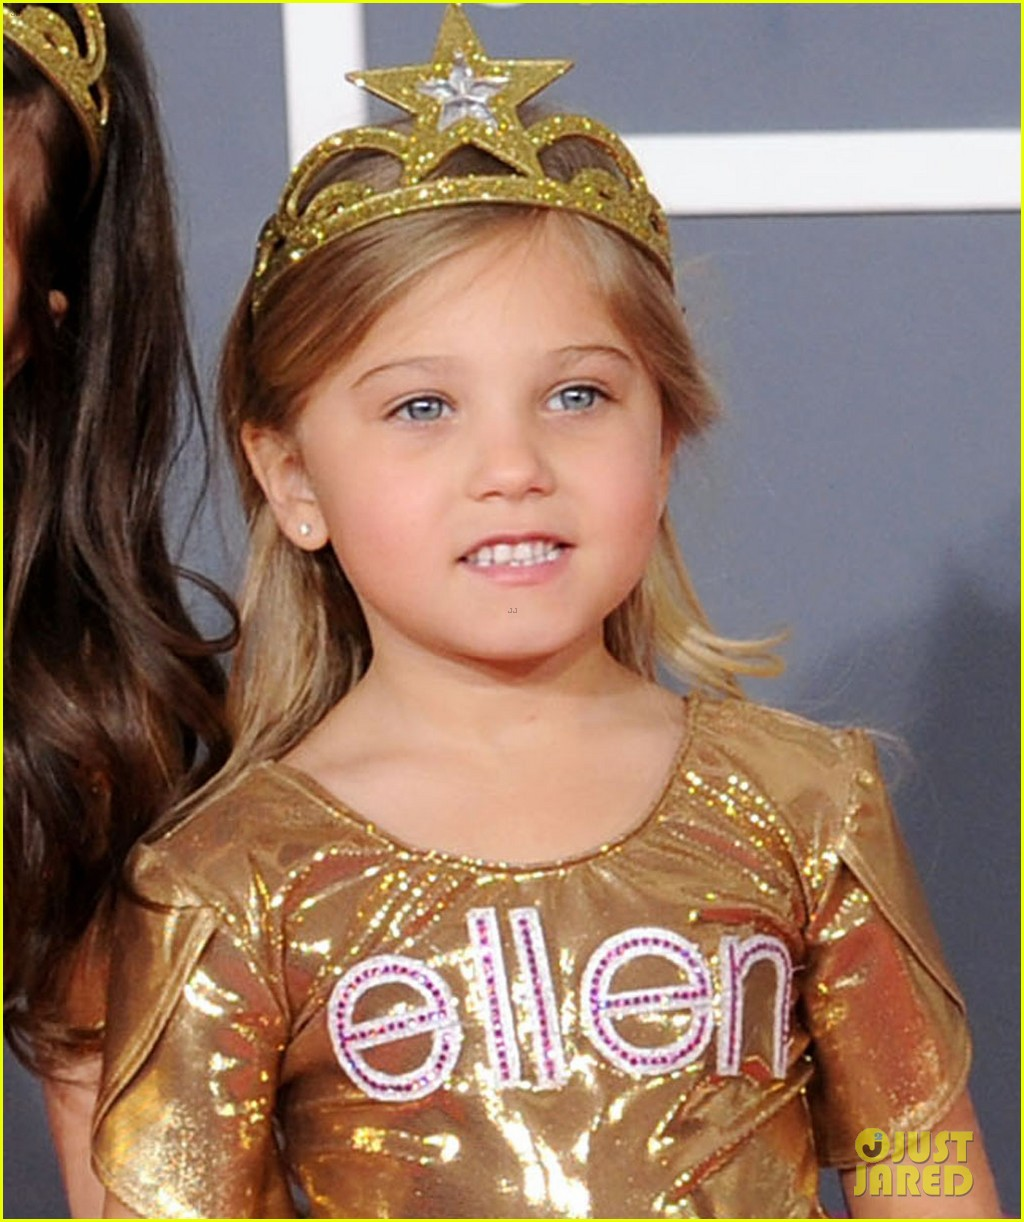 sophia grace rosie grammys 2012 red carpet 02